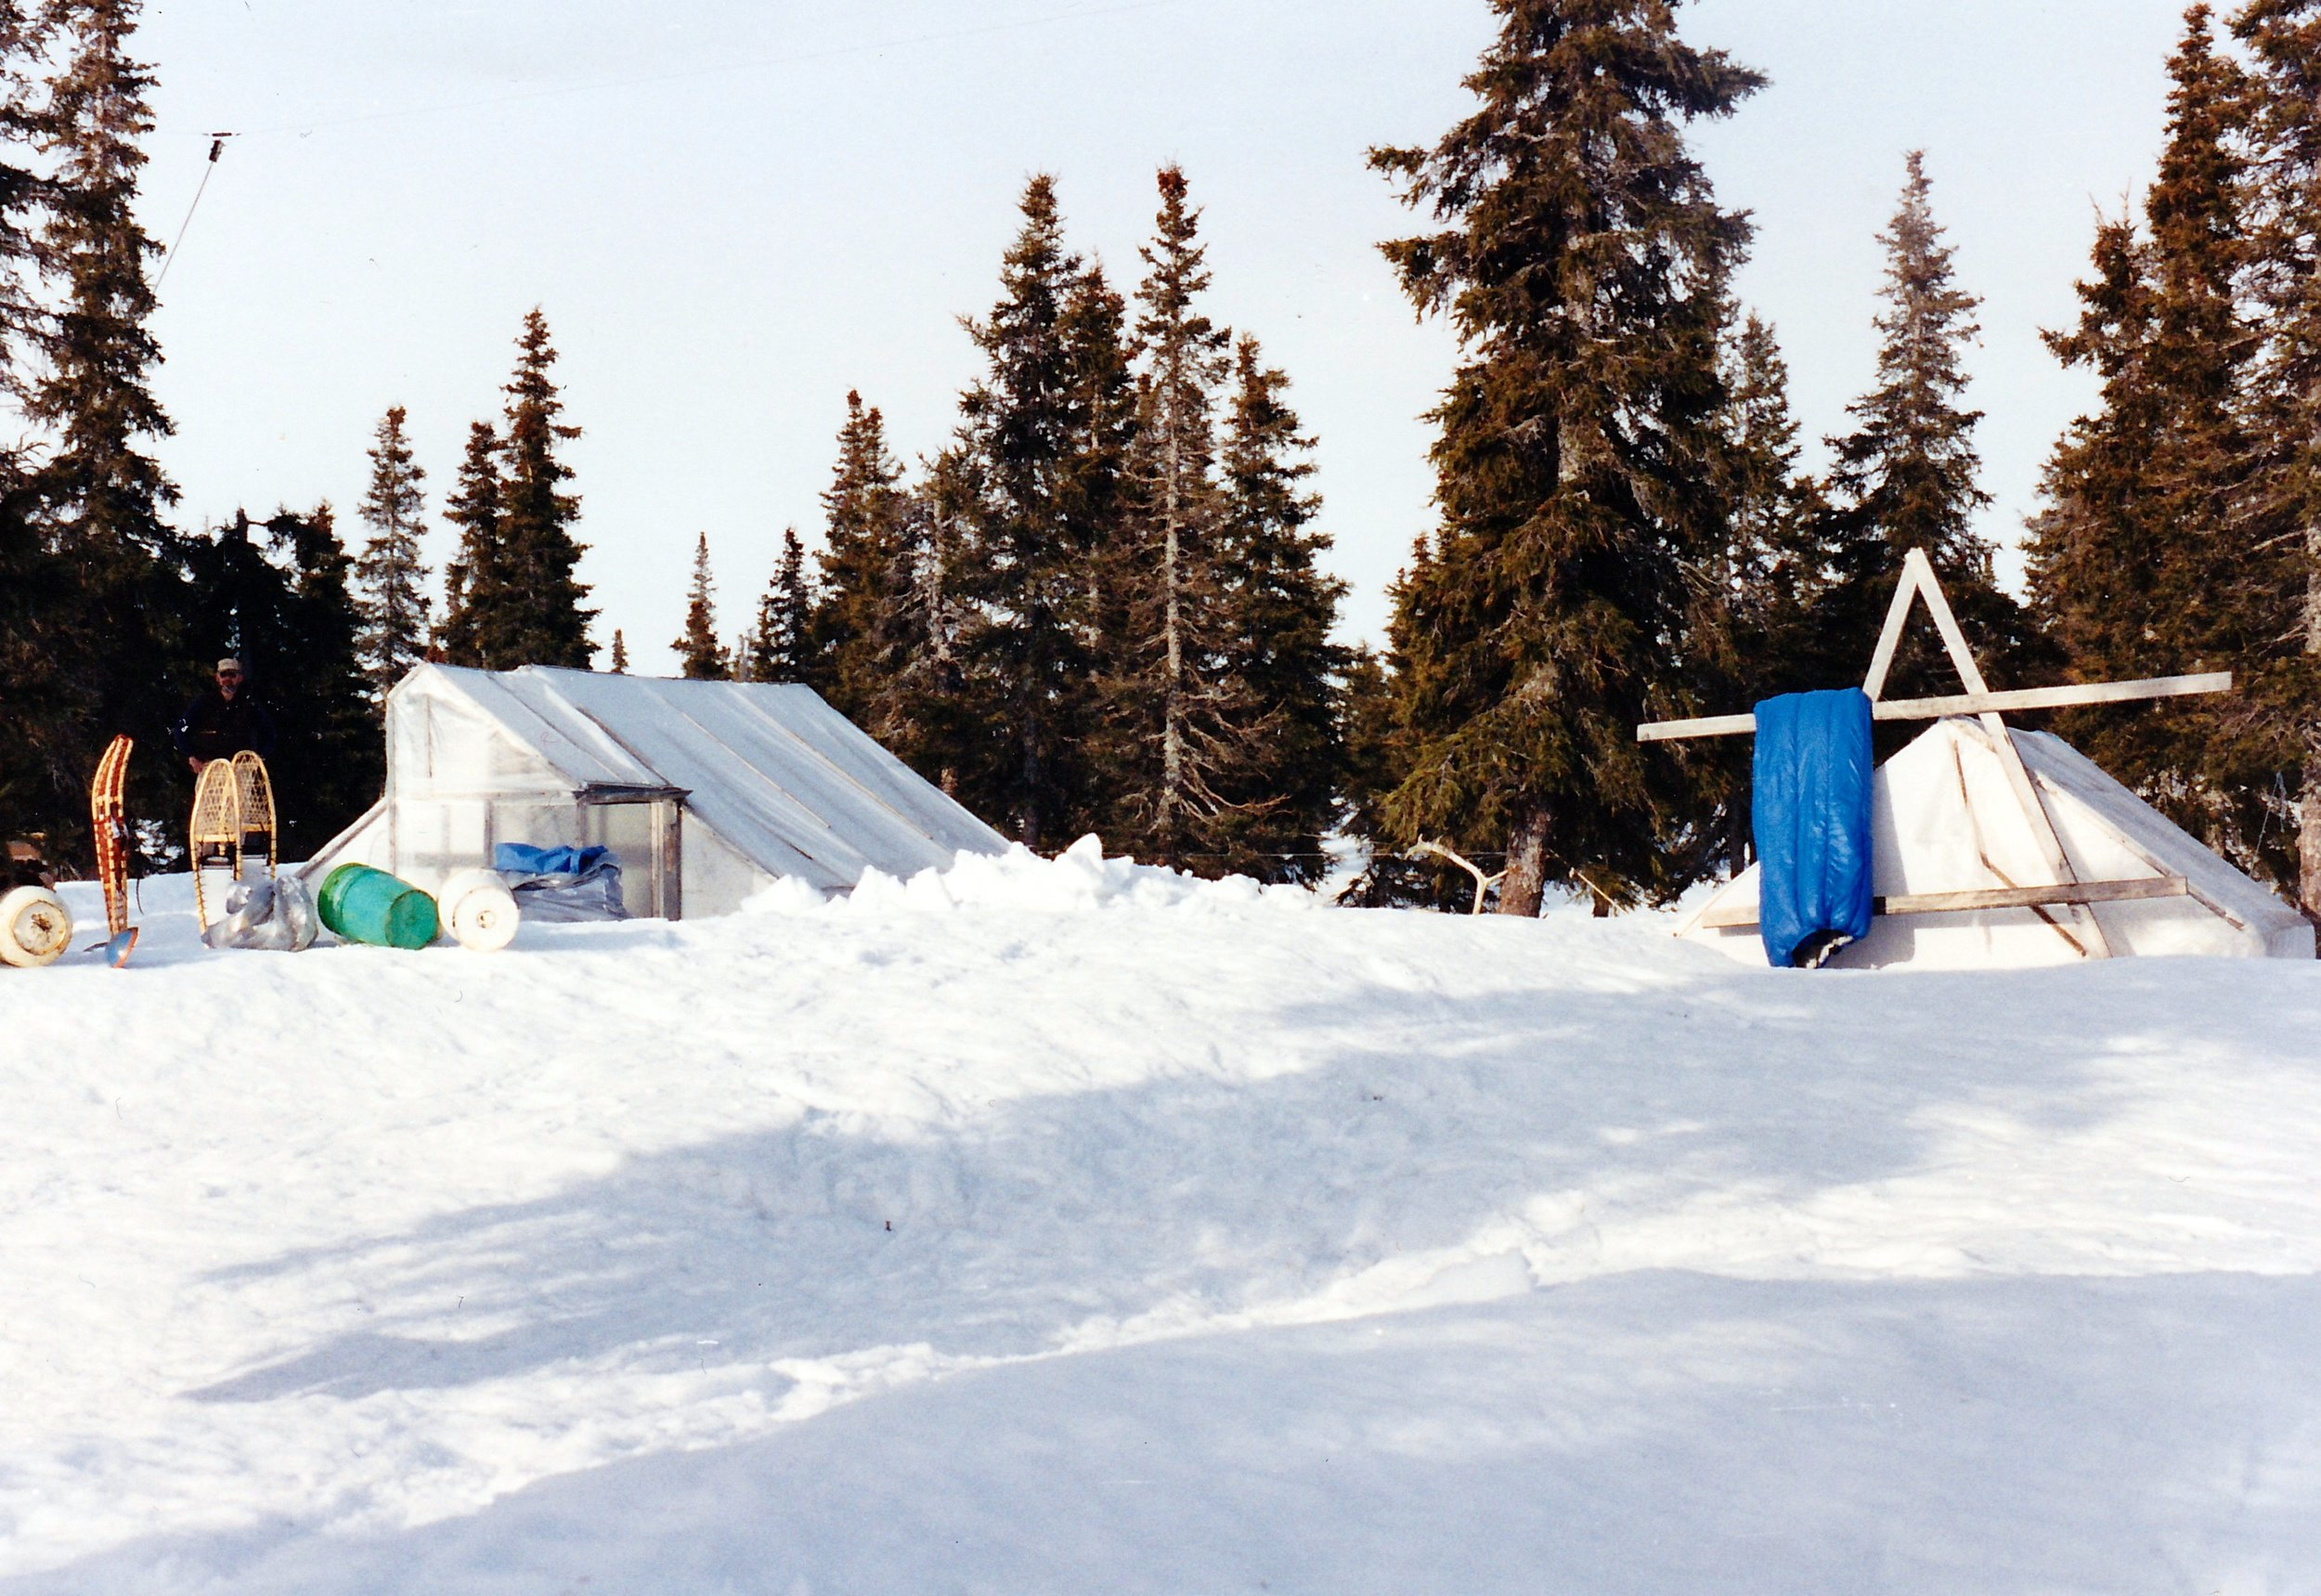 The camp during normal operations. Dan behind the snowshoes probably dragging dead fire wood in for the fall. That was another job we did during rest periods.